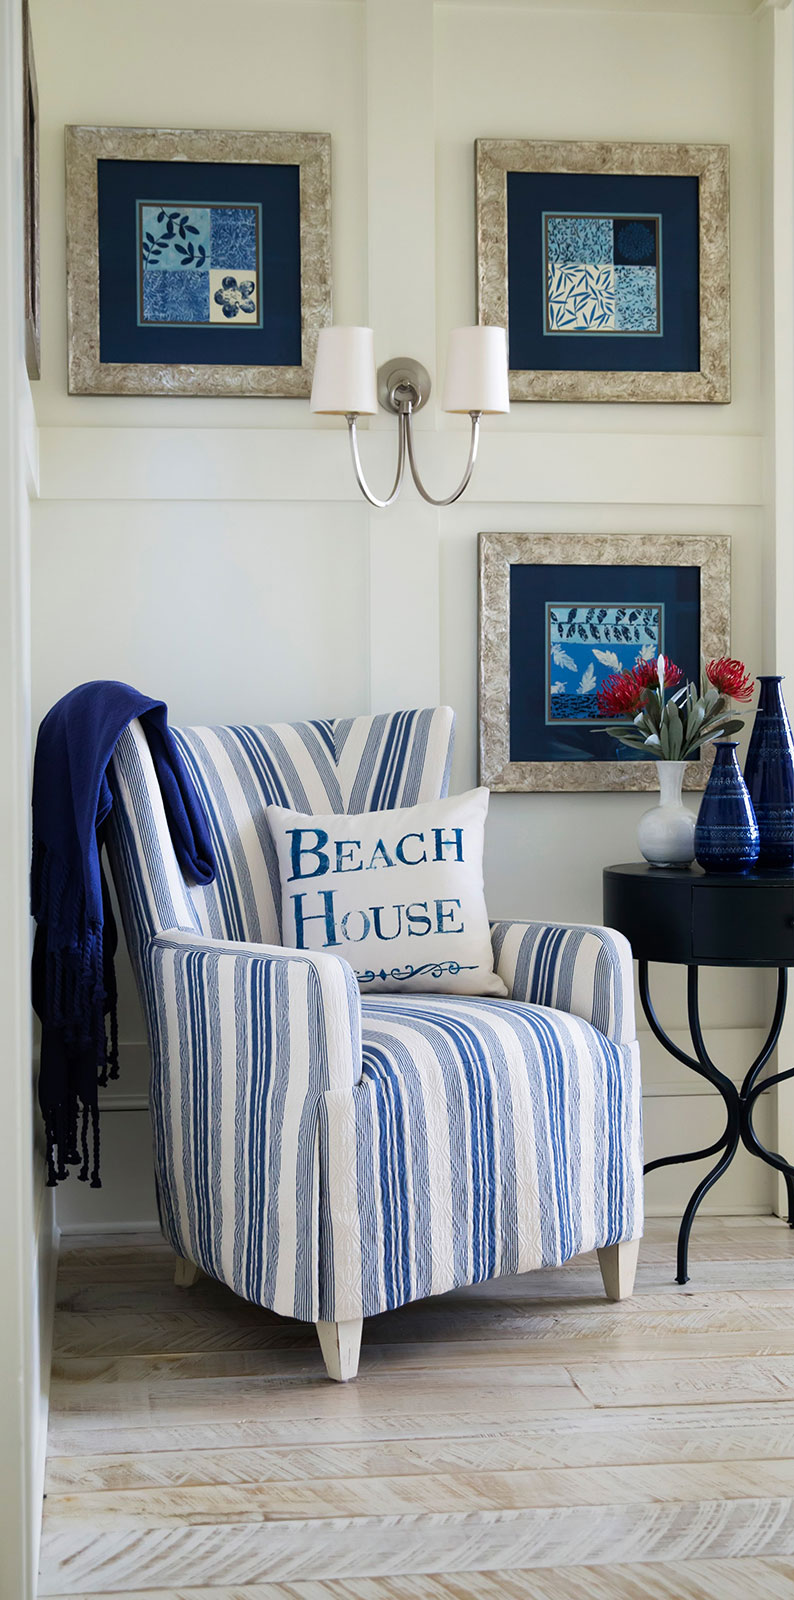 At The Beach: Inviting entry to guest bedroom  Resources: Chair: Century Furniture   Fabric: CR LainePattern: Marley Indigo  Throw: Pottery Barn   Side Table: Pottery Barn  Wall Sconce: Visual Comfort   Vases: Ethan Allen  Art Prints: Art.com;   Framing: Michaels  Design Thought: It is convenient to have a chair or bench to sit on in the bedroom. A chair provides a place to rest at the beginning or end of the day. Adding a small table and reading light offers a cozy spot to unwind or just take it easy for a few minutes.